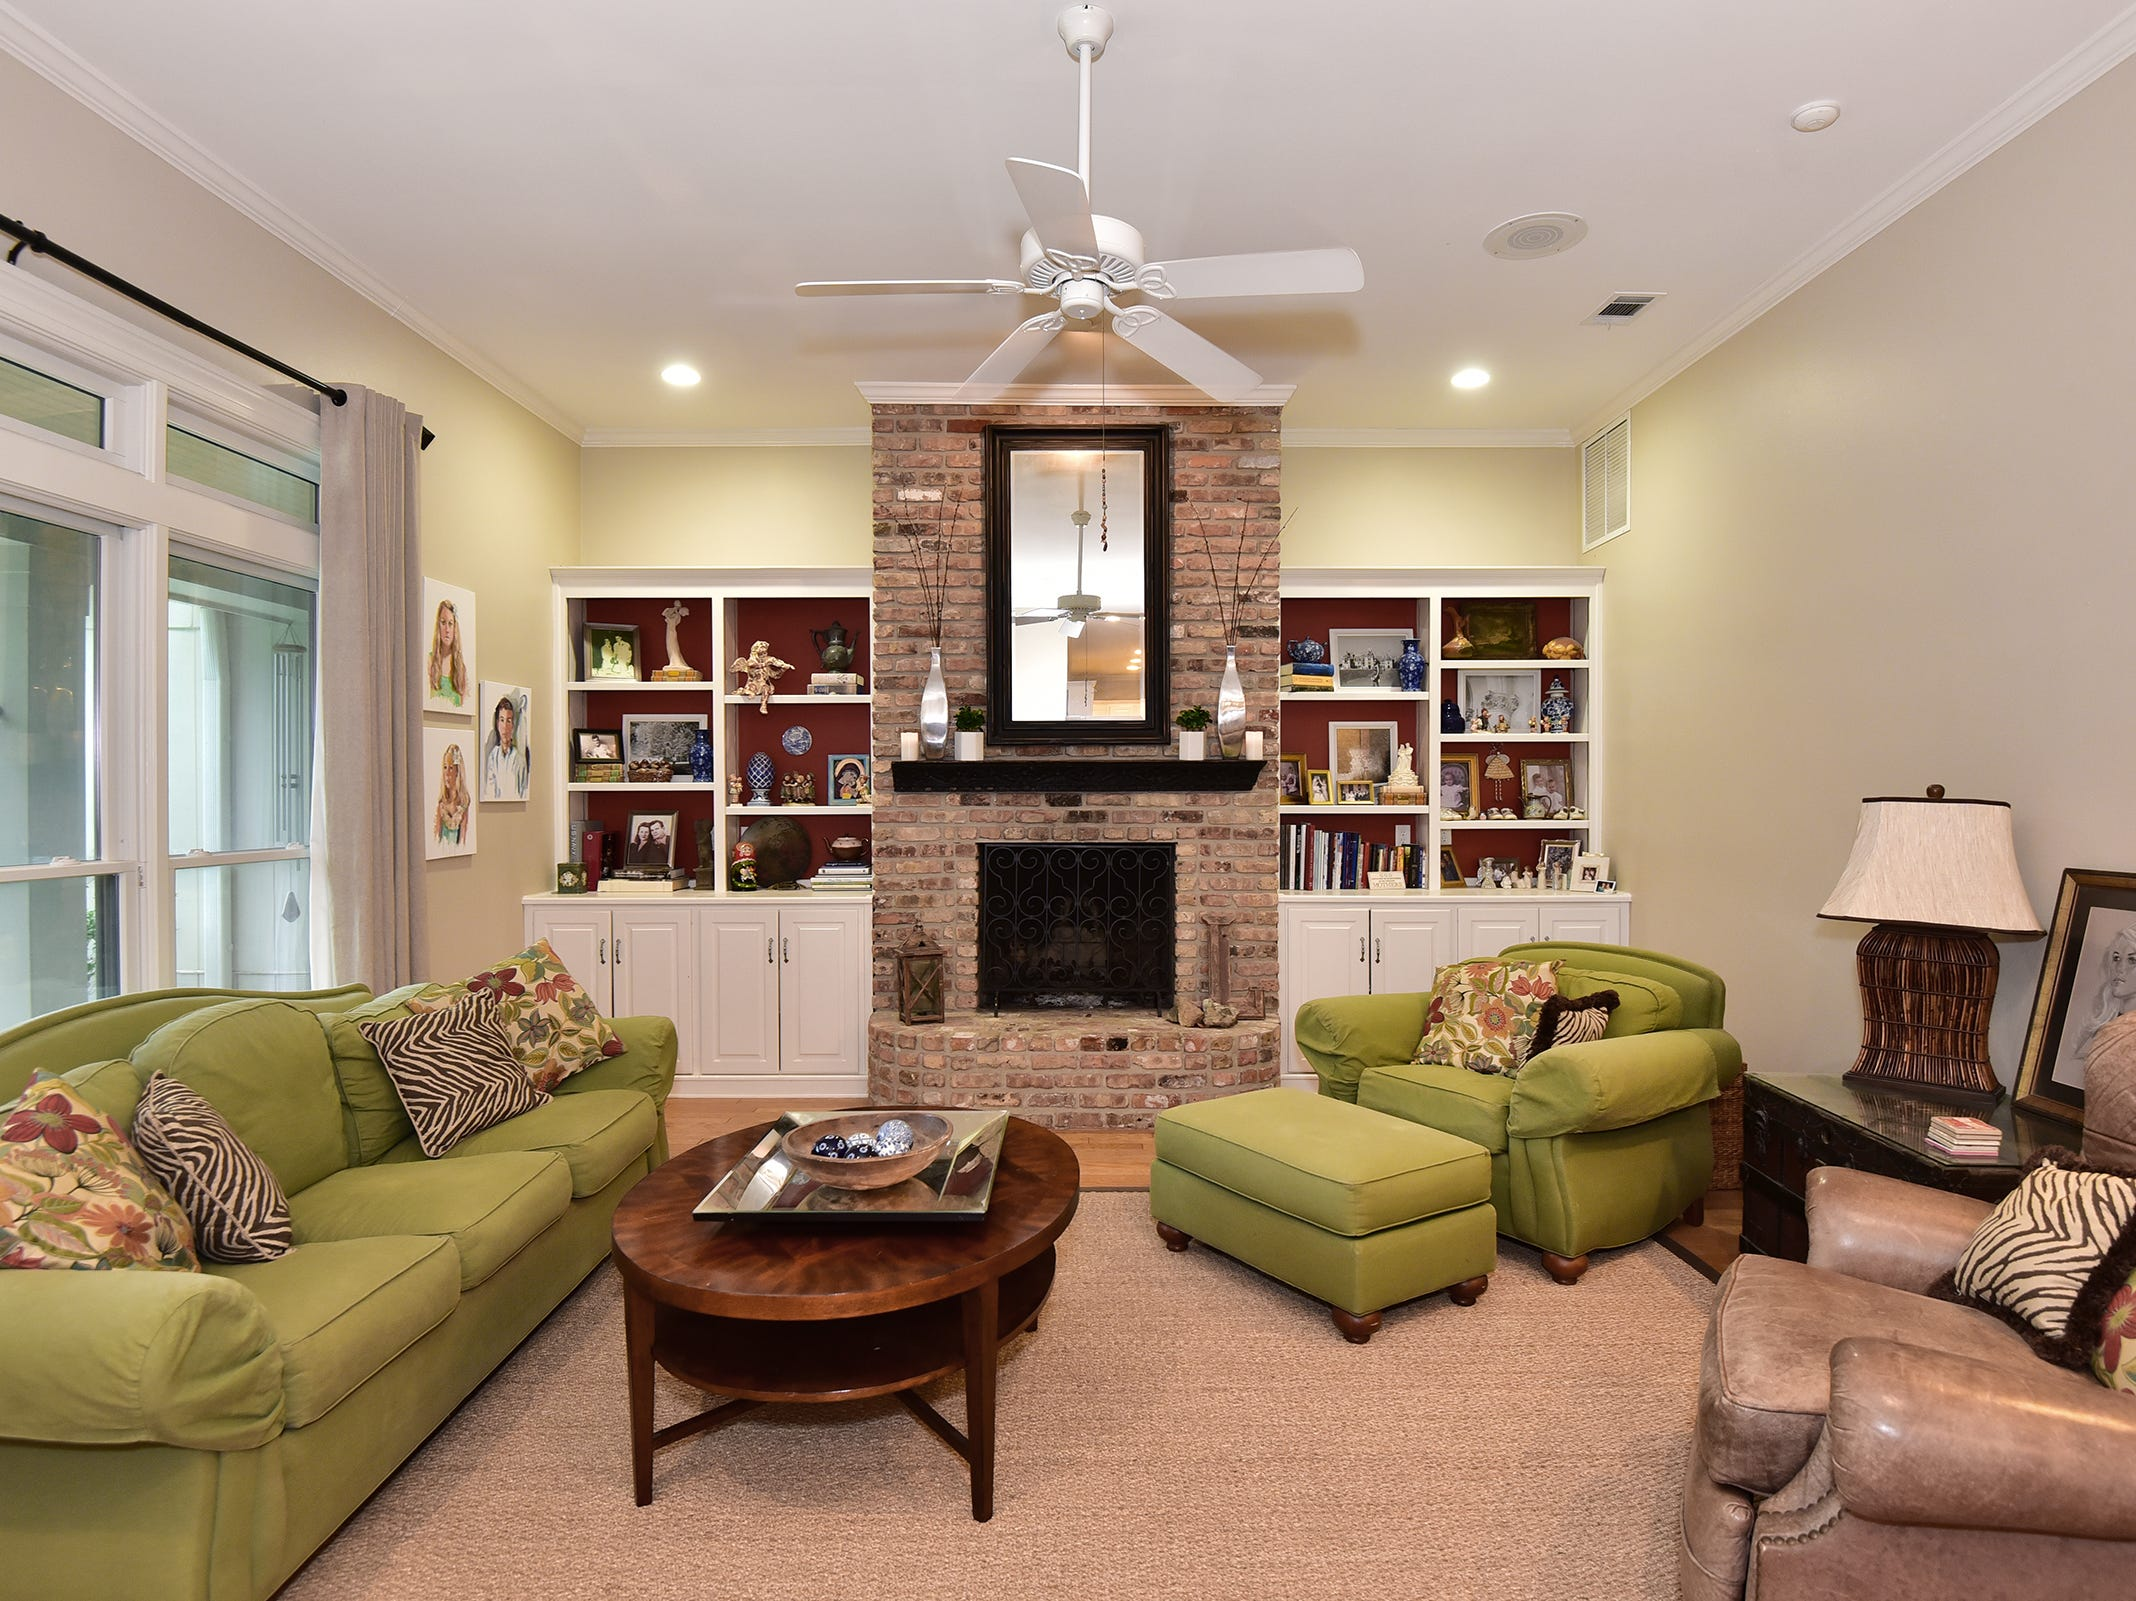 2474 Semur Rd., the family room is a cozy, comfortable spot for entertaining.